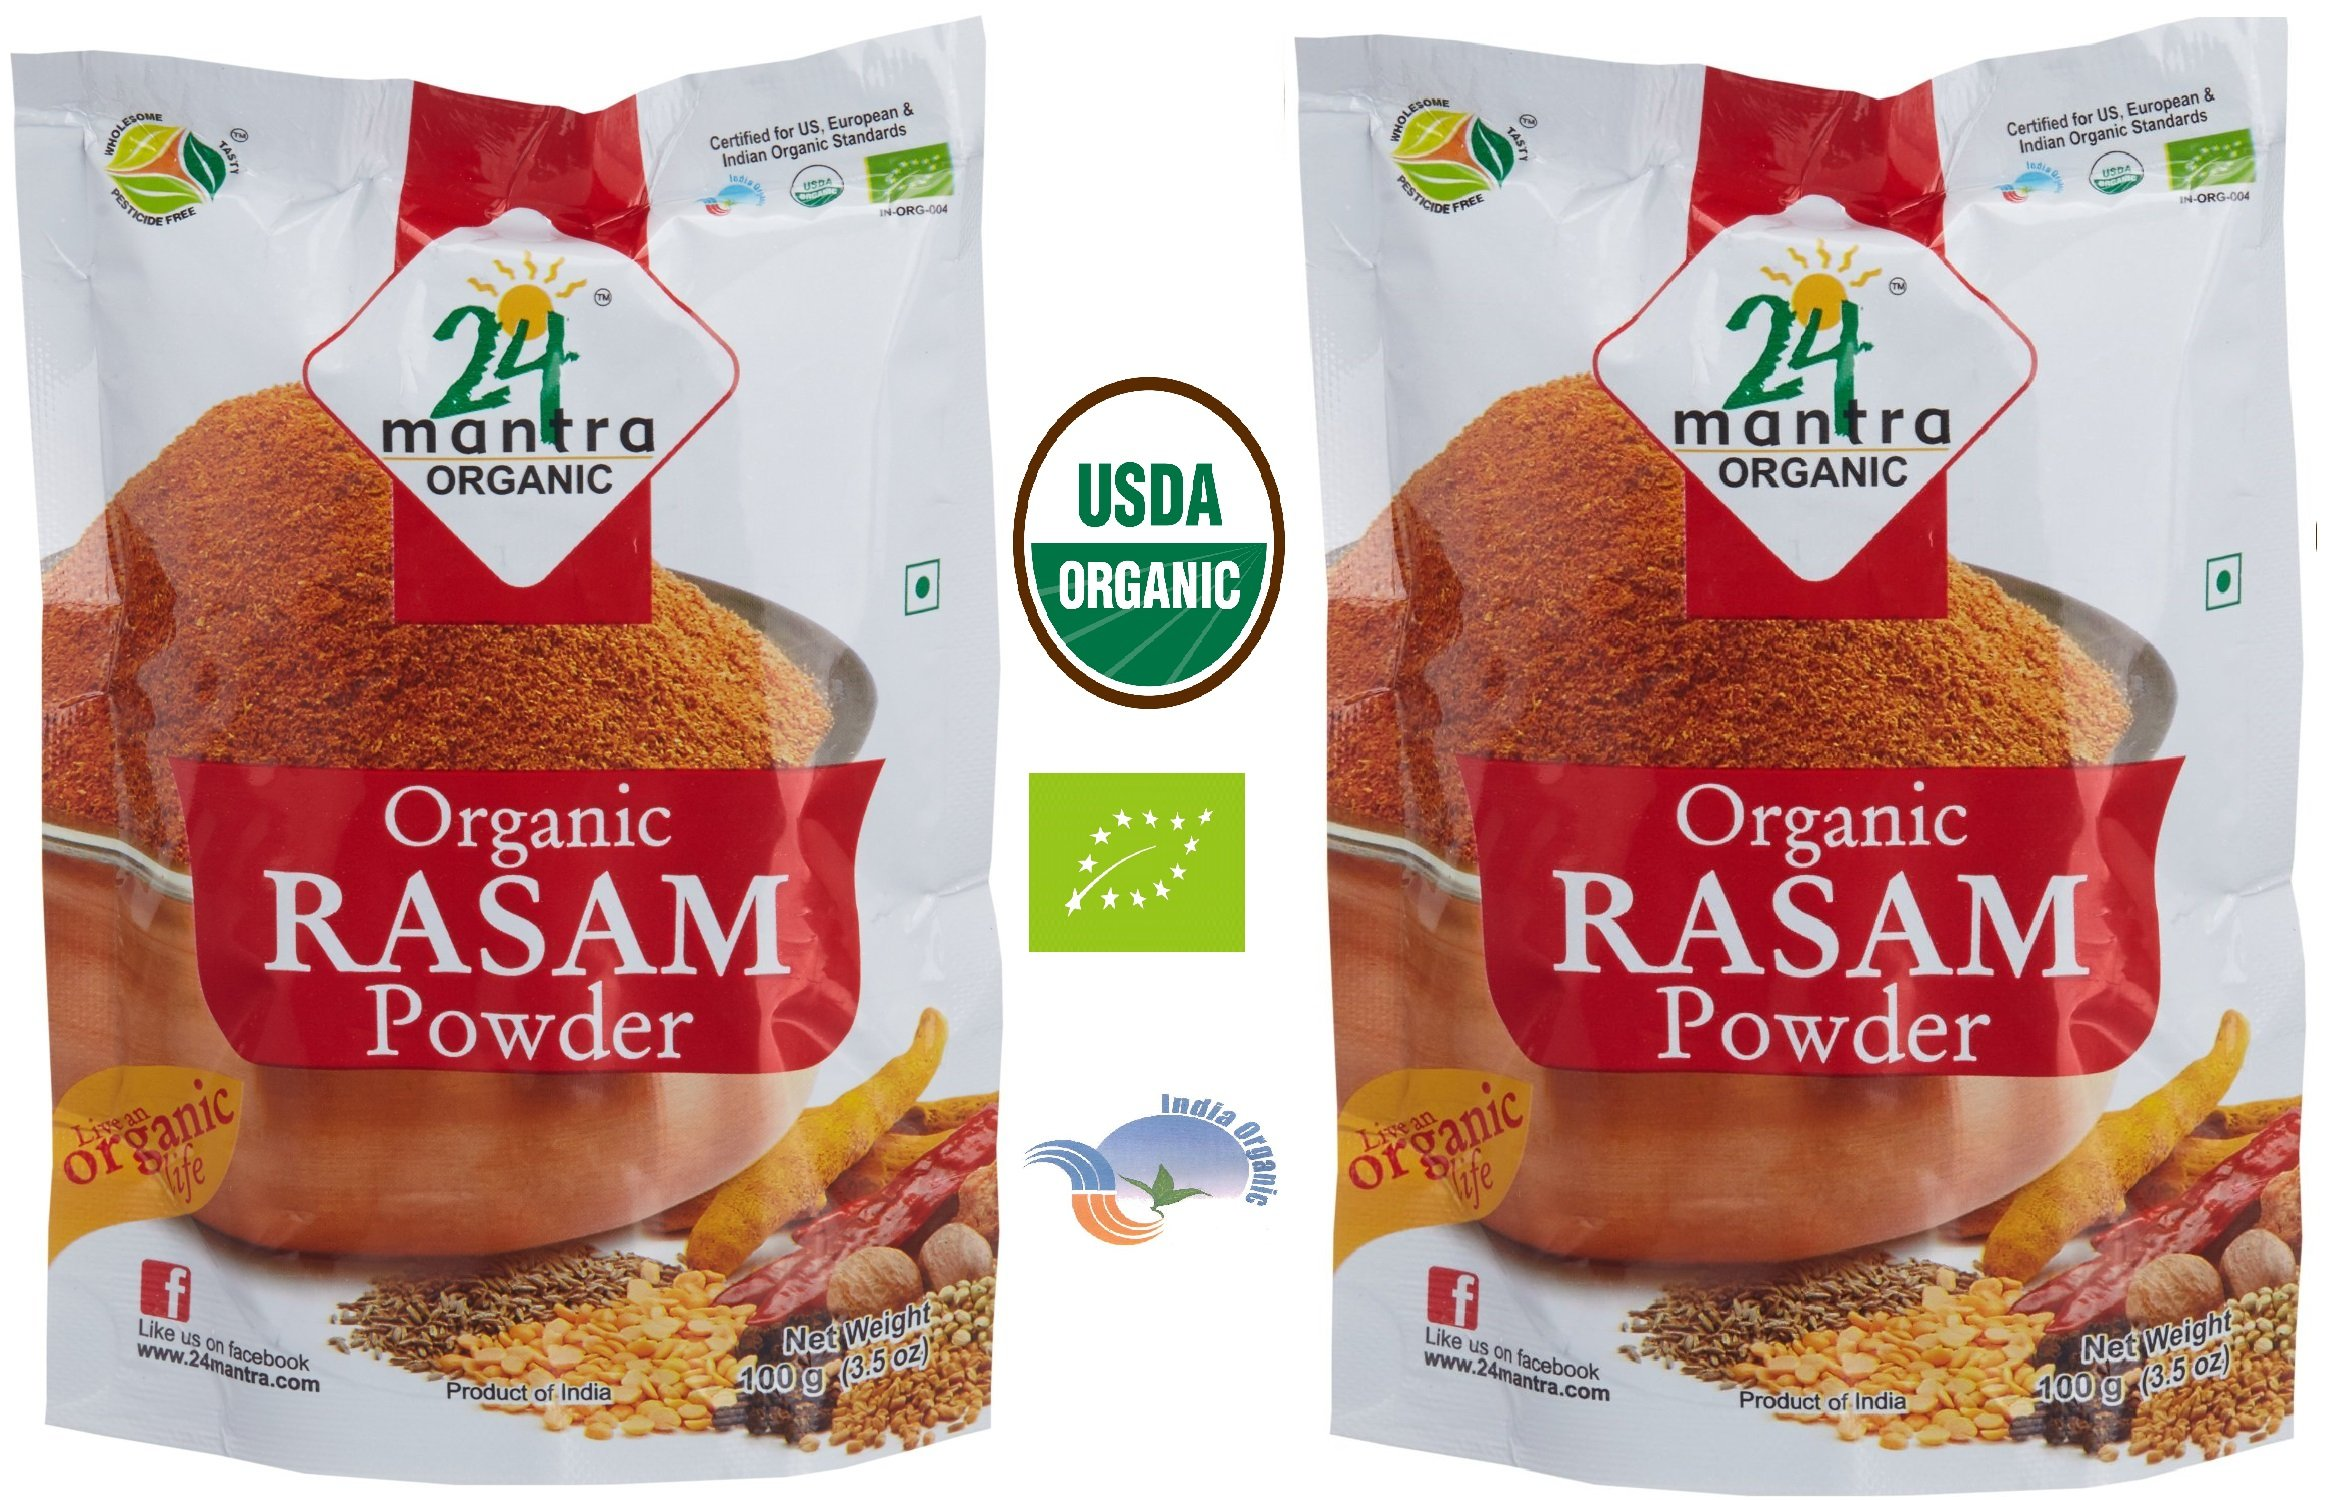 Organic Rasam Powder USDA Certified Organic EU Certified Organic Pesticides Free Adulteration Free Sodium Free - Pack of 2 X 3.5 Ounces (7 Ounces) - 24 Mantra Organic